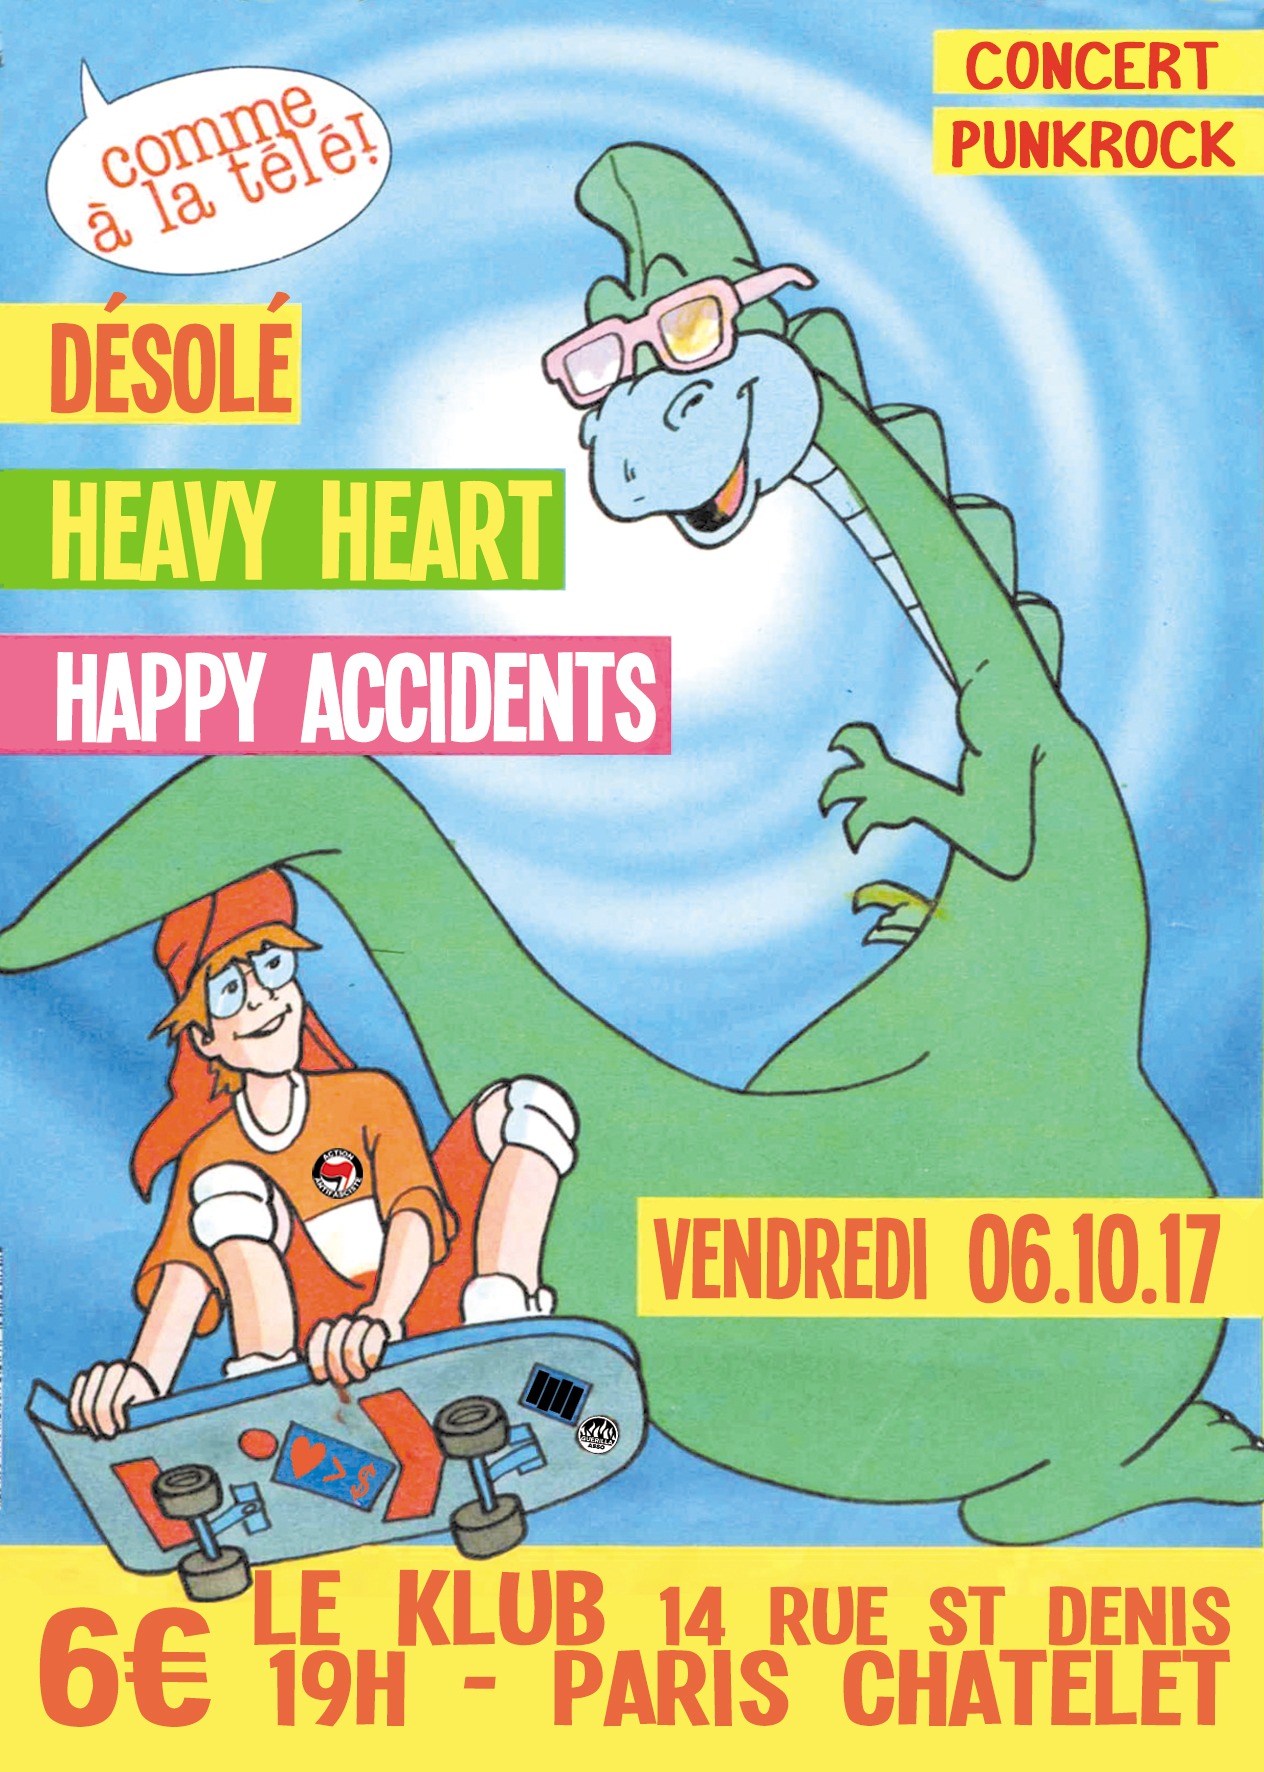 HEAVY HEART + HAPPY ACCIDENTS + DESOLE ■ 06.10